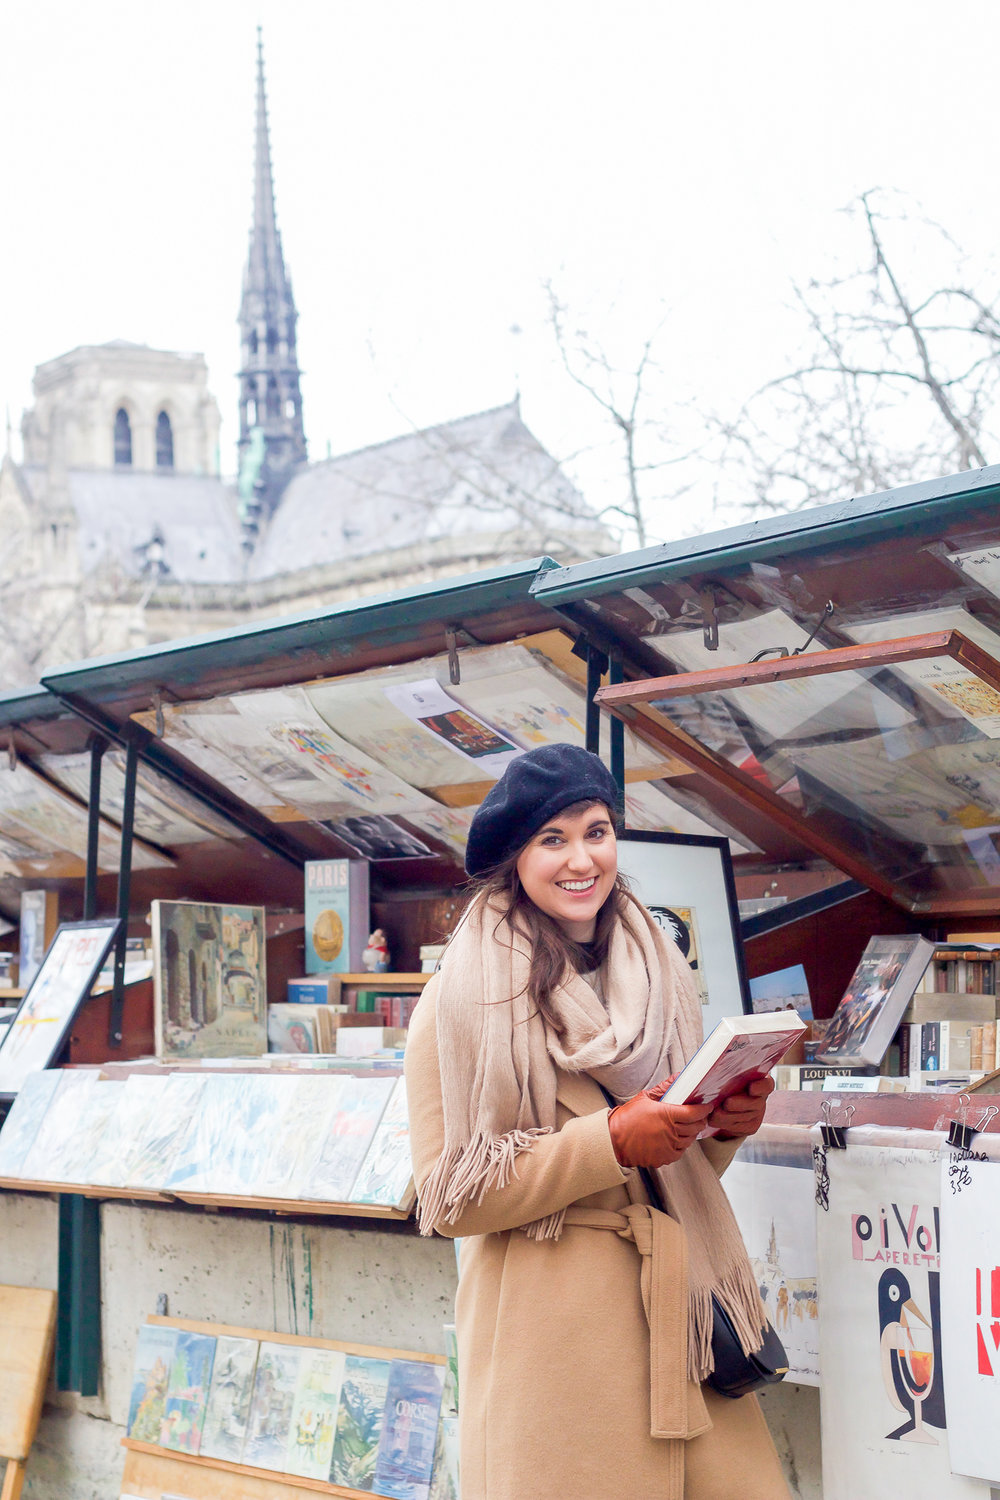 Love the rows of book stands along the Seine by Notre Dame (in the background)